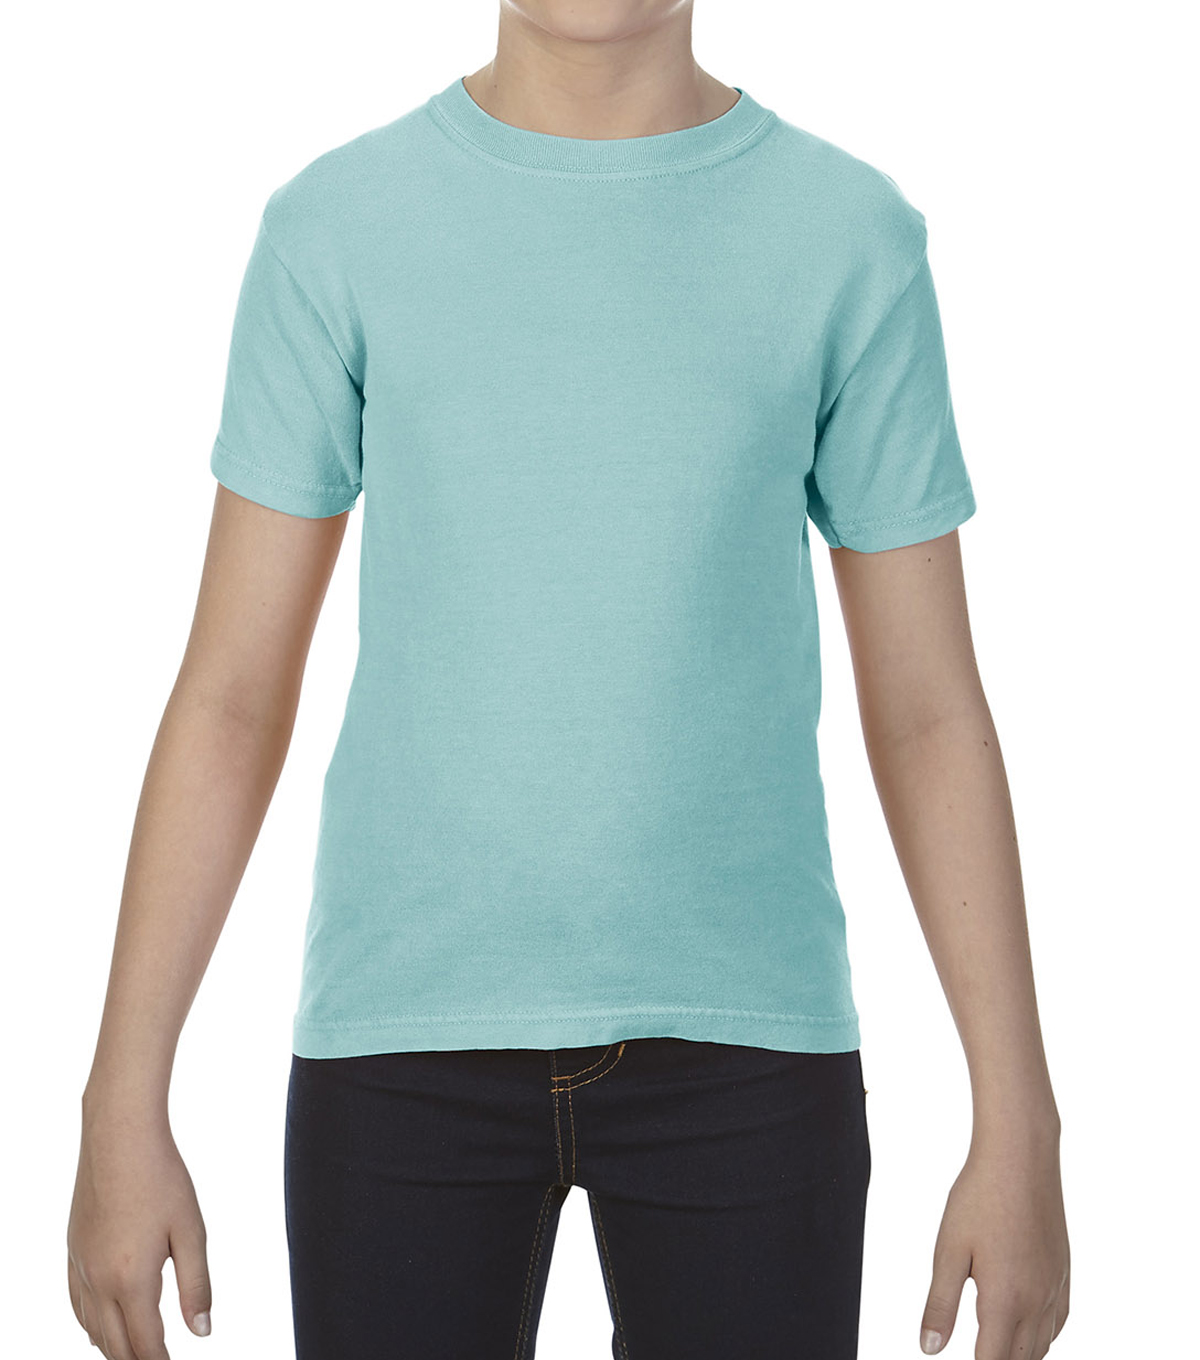 Comfort Colors 9018 Large Youth T-Shirt, Chalky Mint